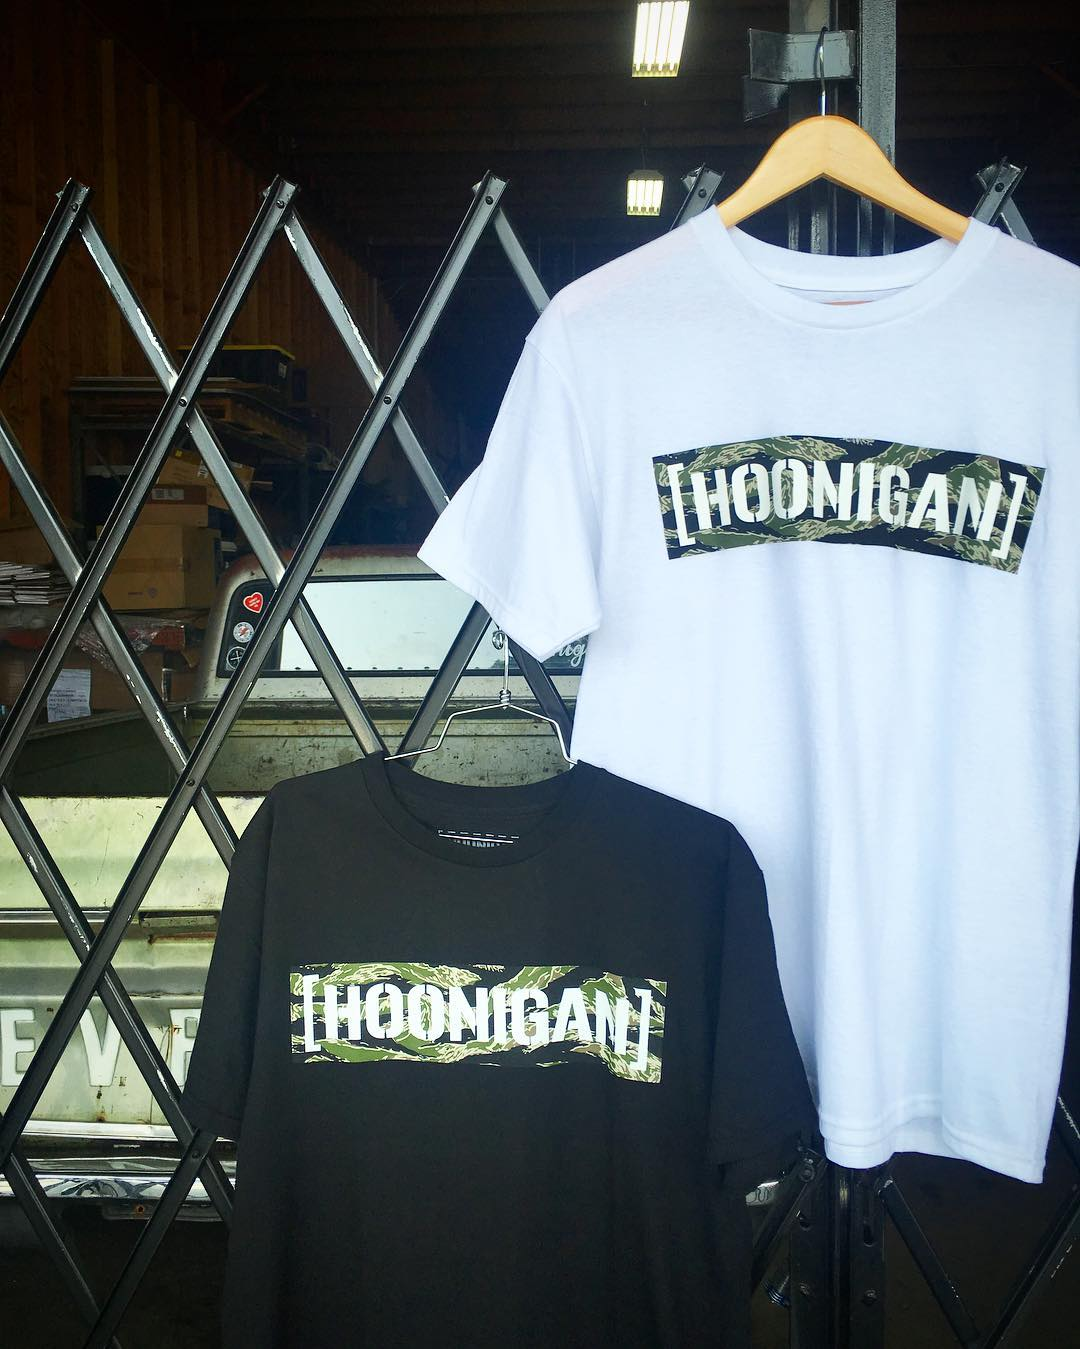 Check out what's new on #hooniganDOTcom! We stocked our shelves with new gear, like these Tiger Camo tees. Hit the link in the bio. #supporthooniganism